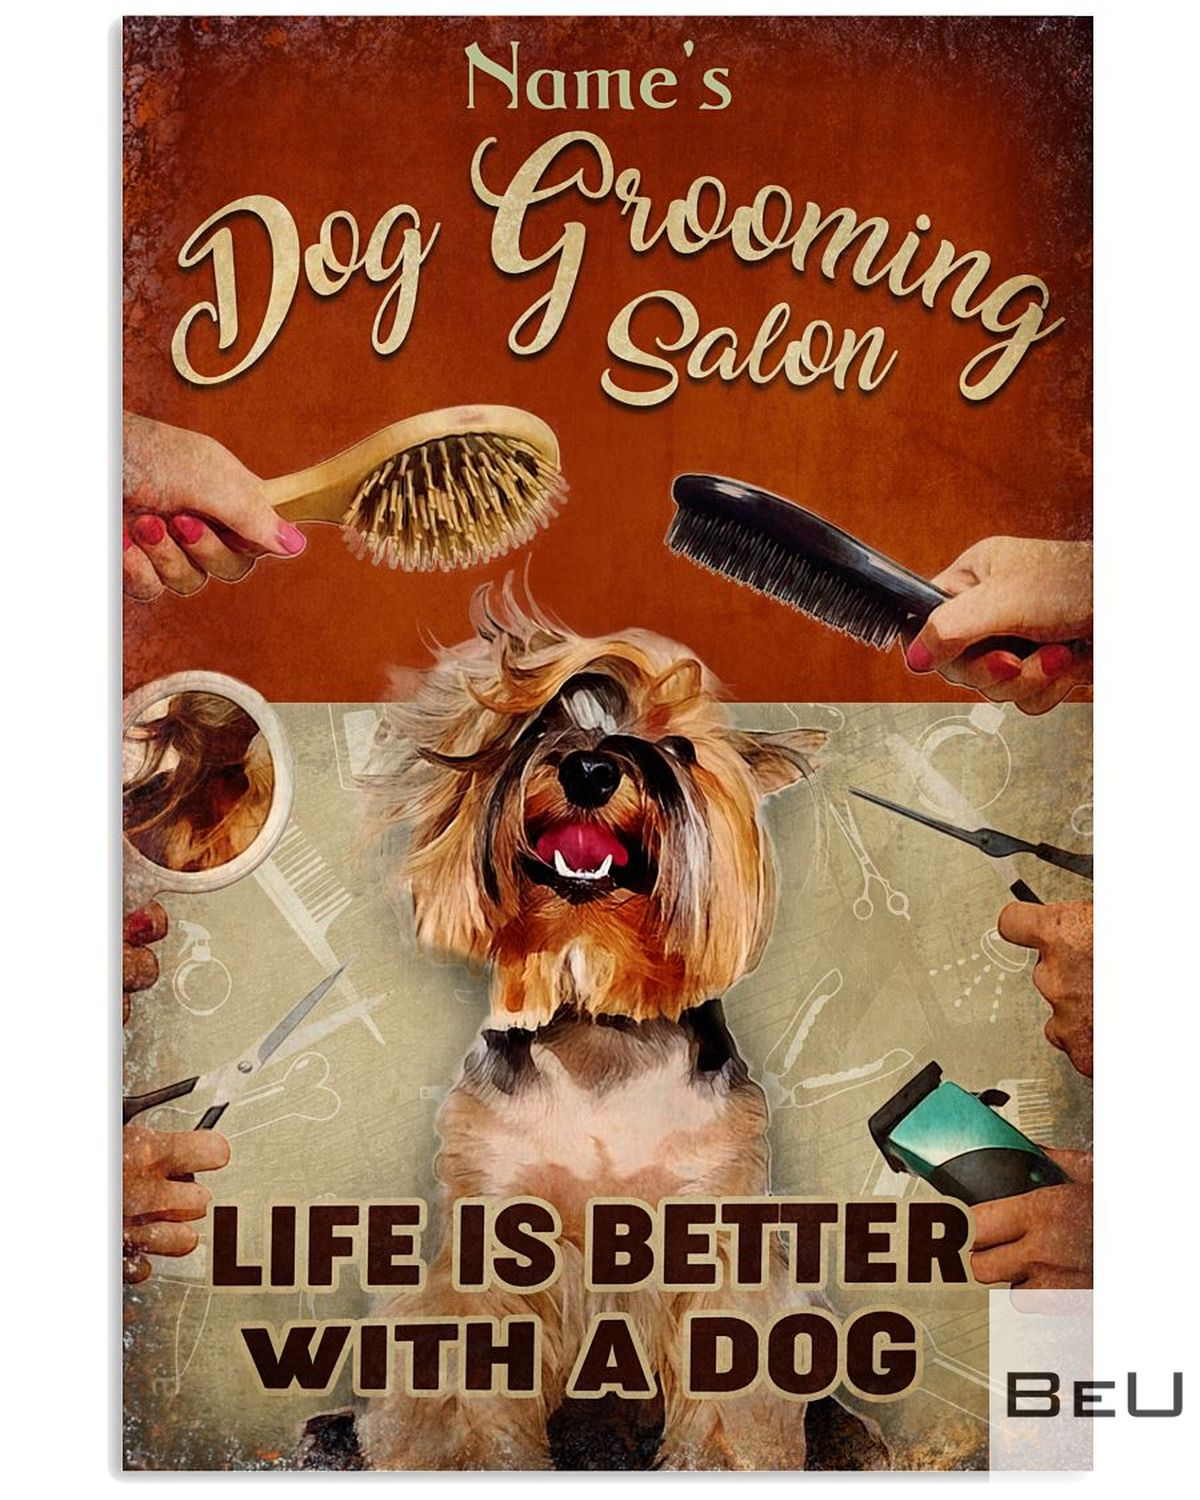 Personalized Dog Grooming Salon life is better with a dog poster